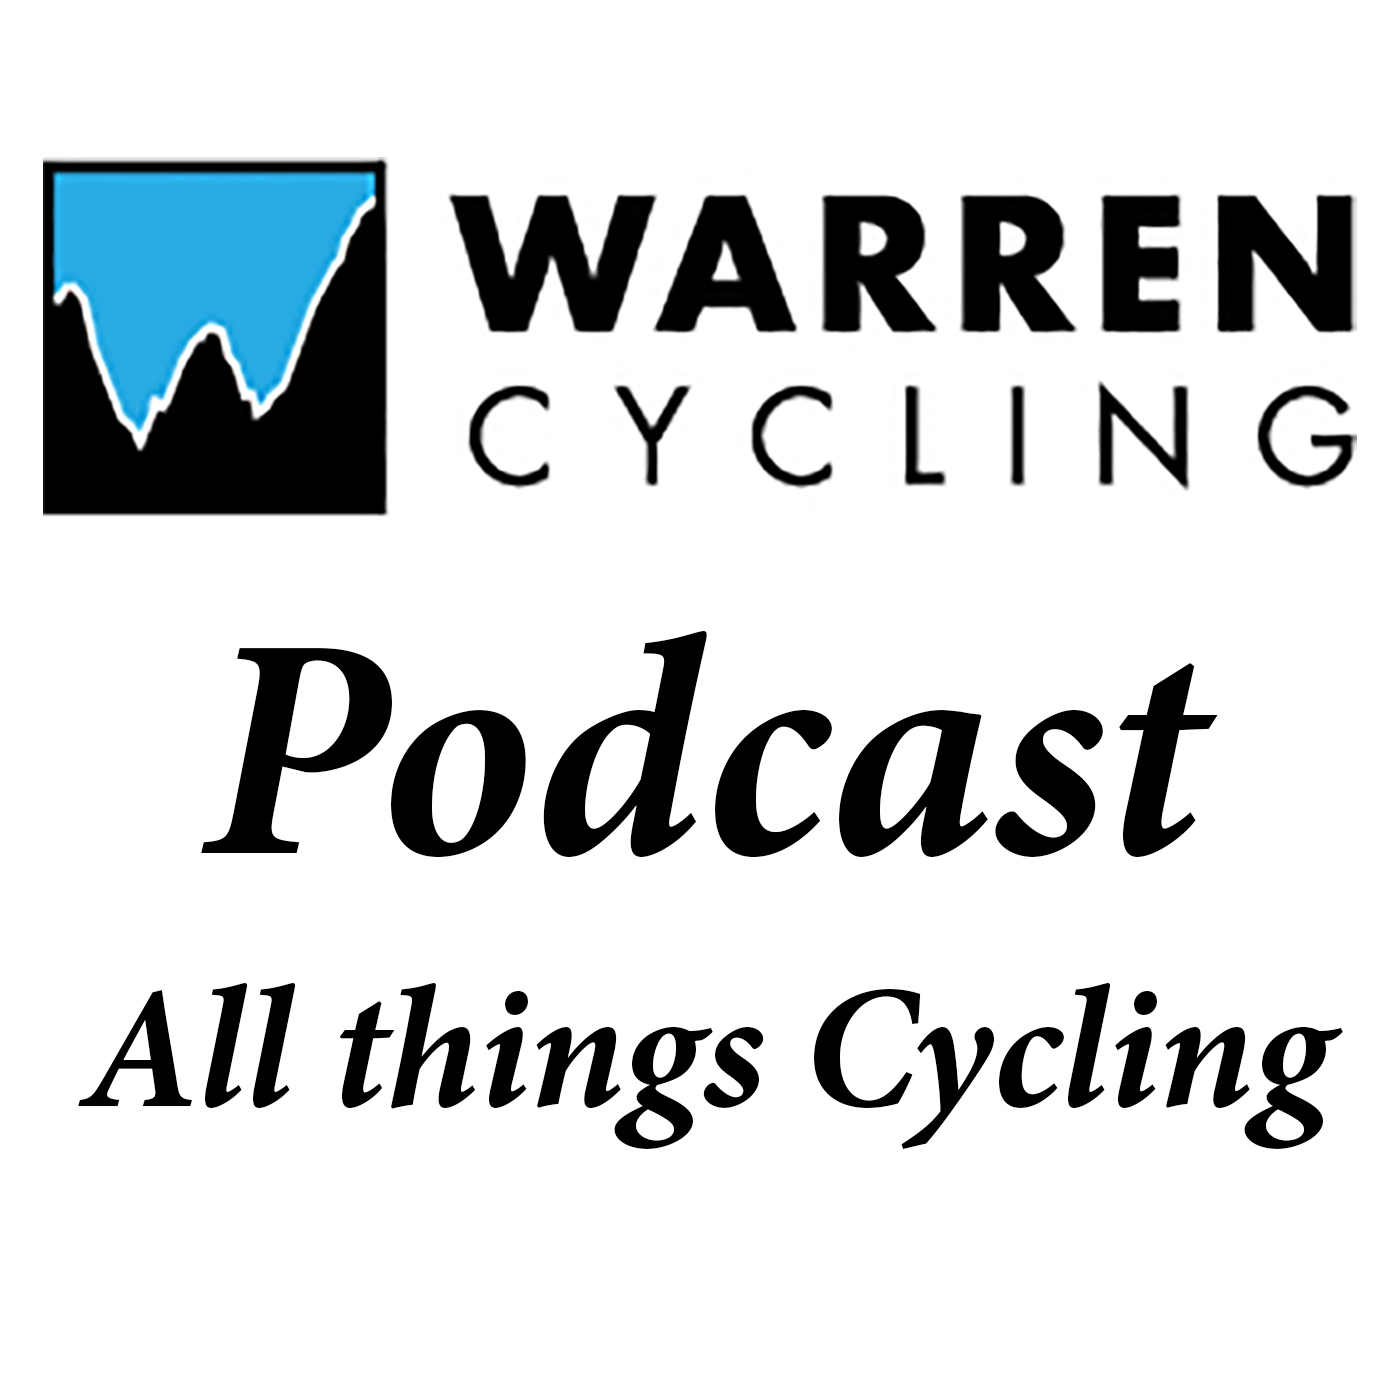 Warren Cycling Podcast Episode 223: World Championships show art